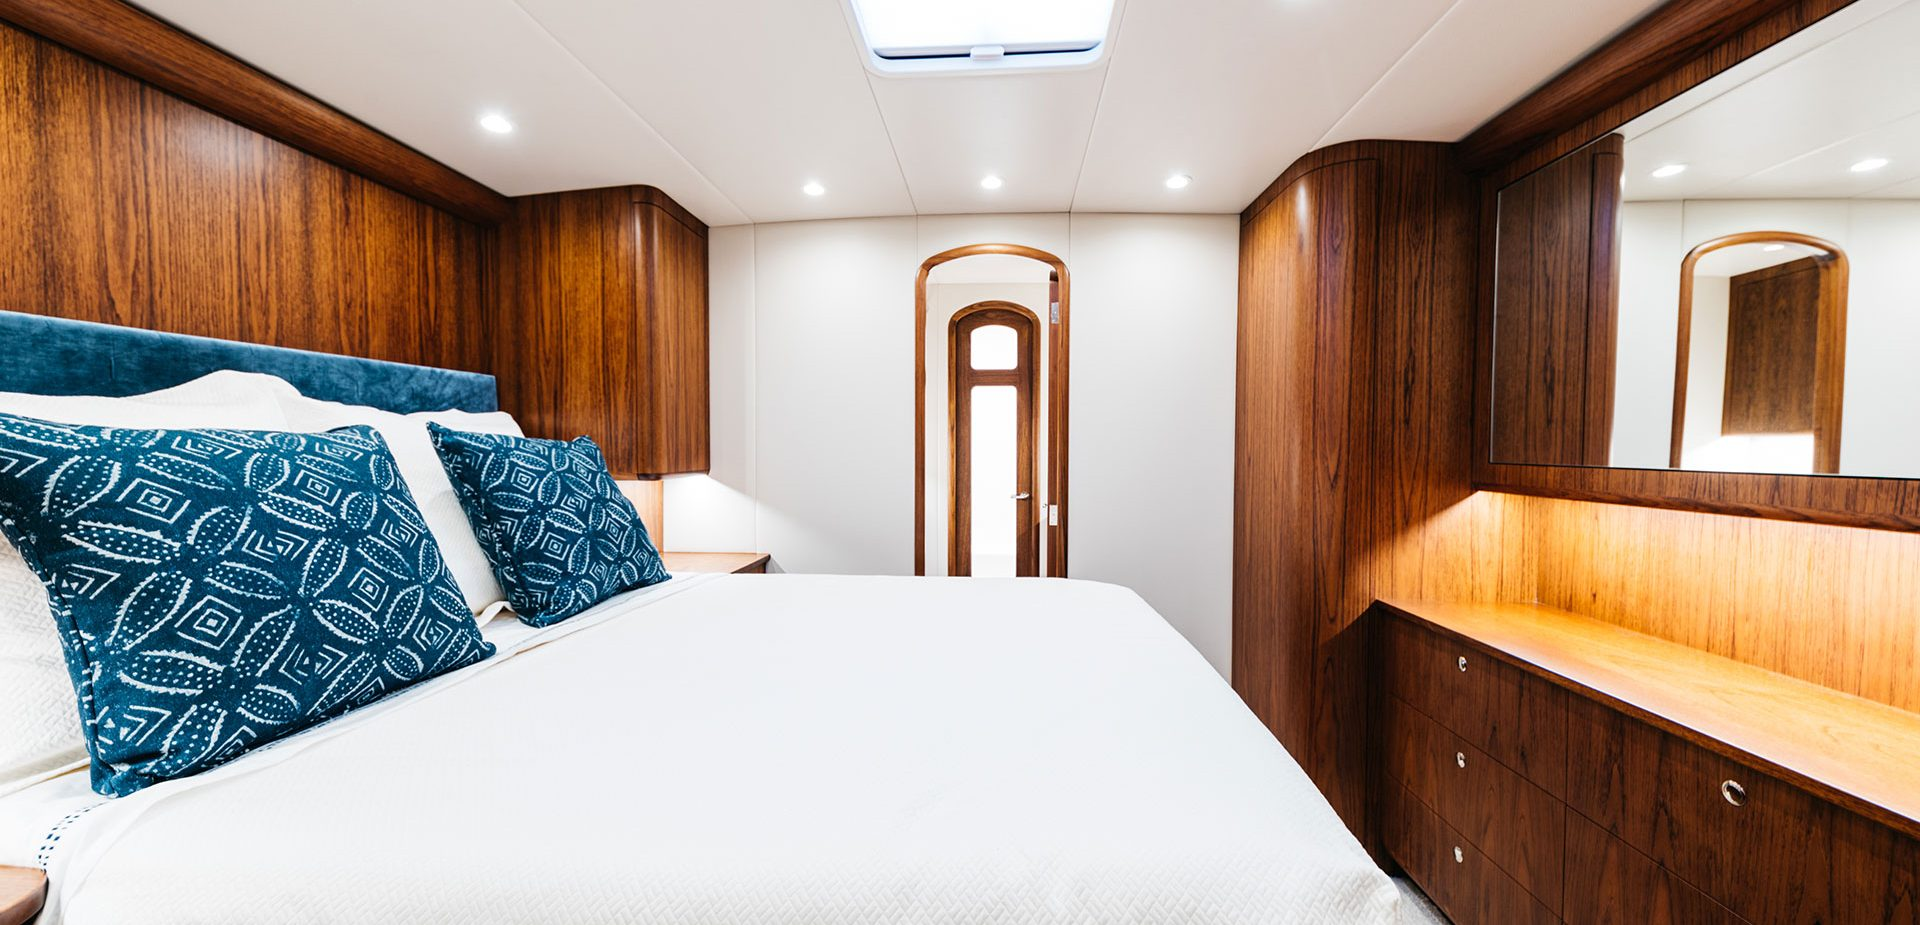 stateroom image of 62 Bayliss